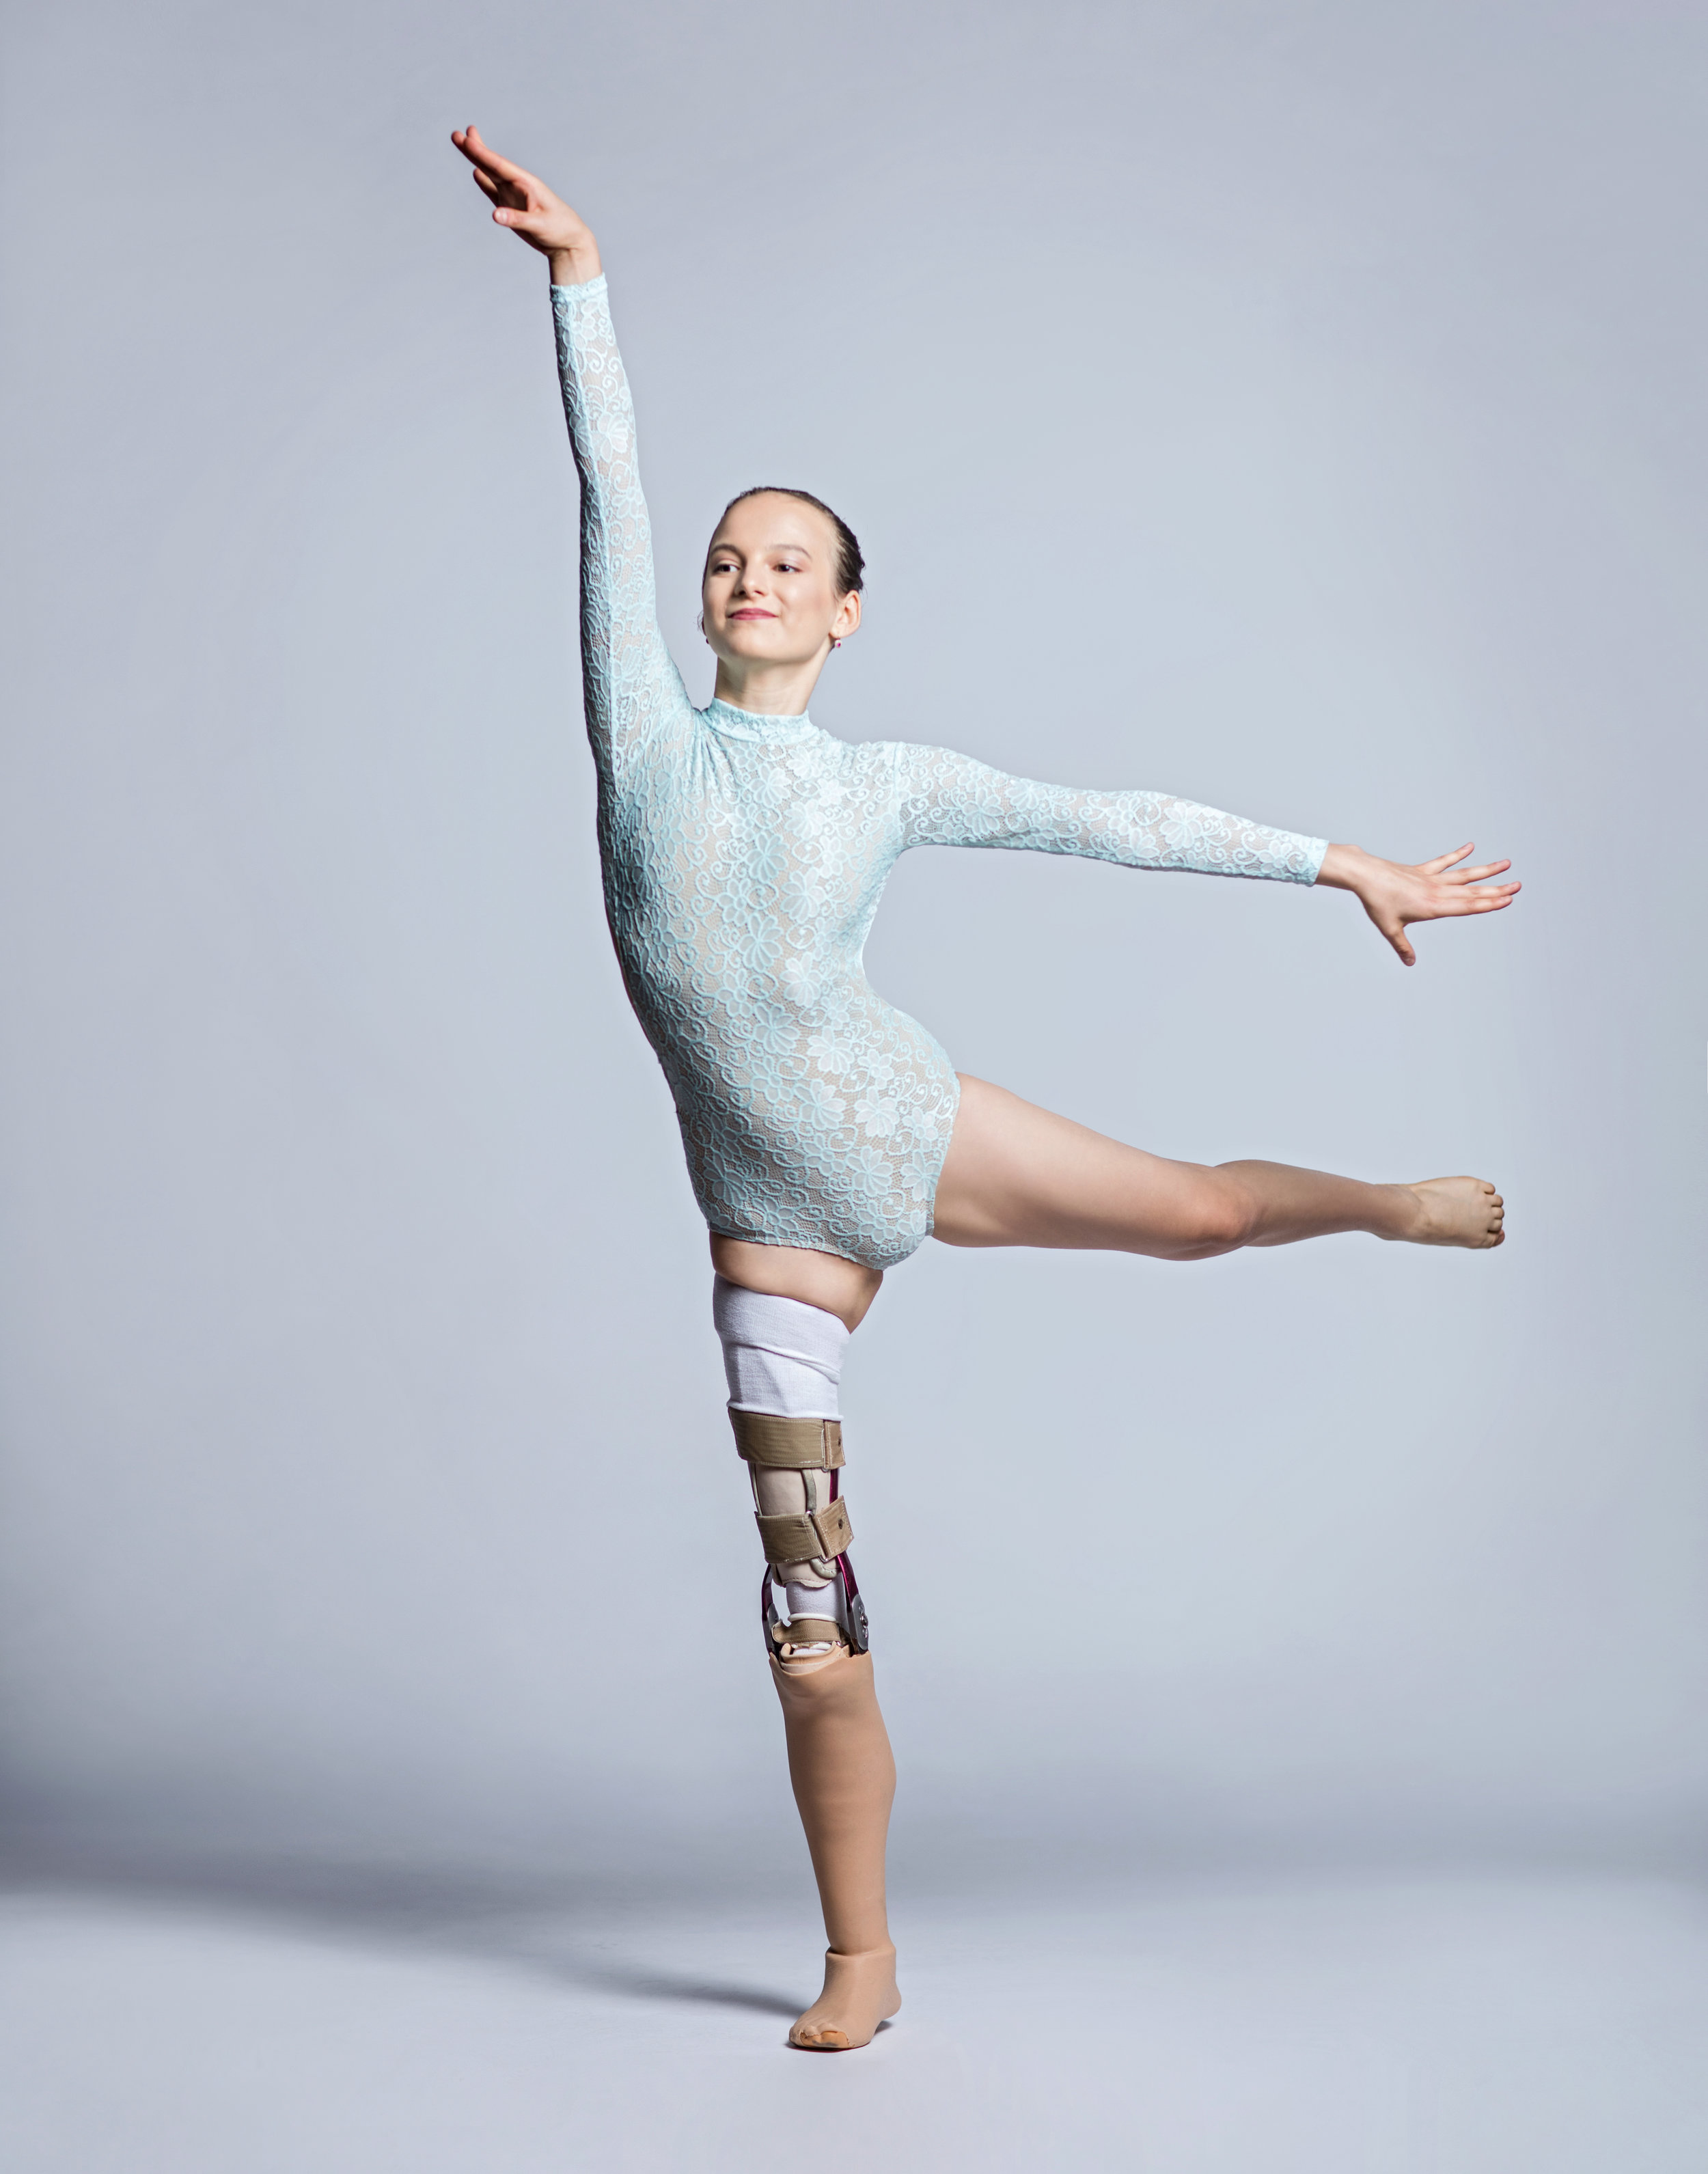 Blue leotard donated by:  Xiaoxiao Designs